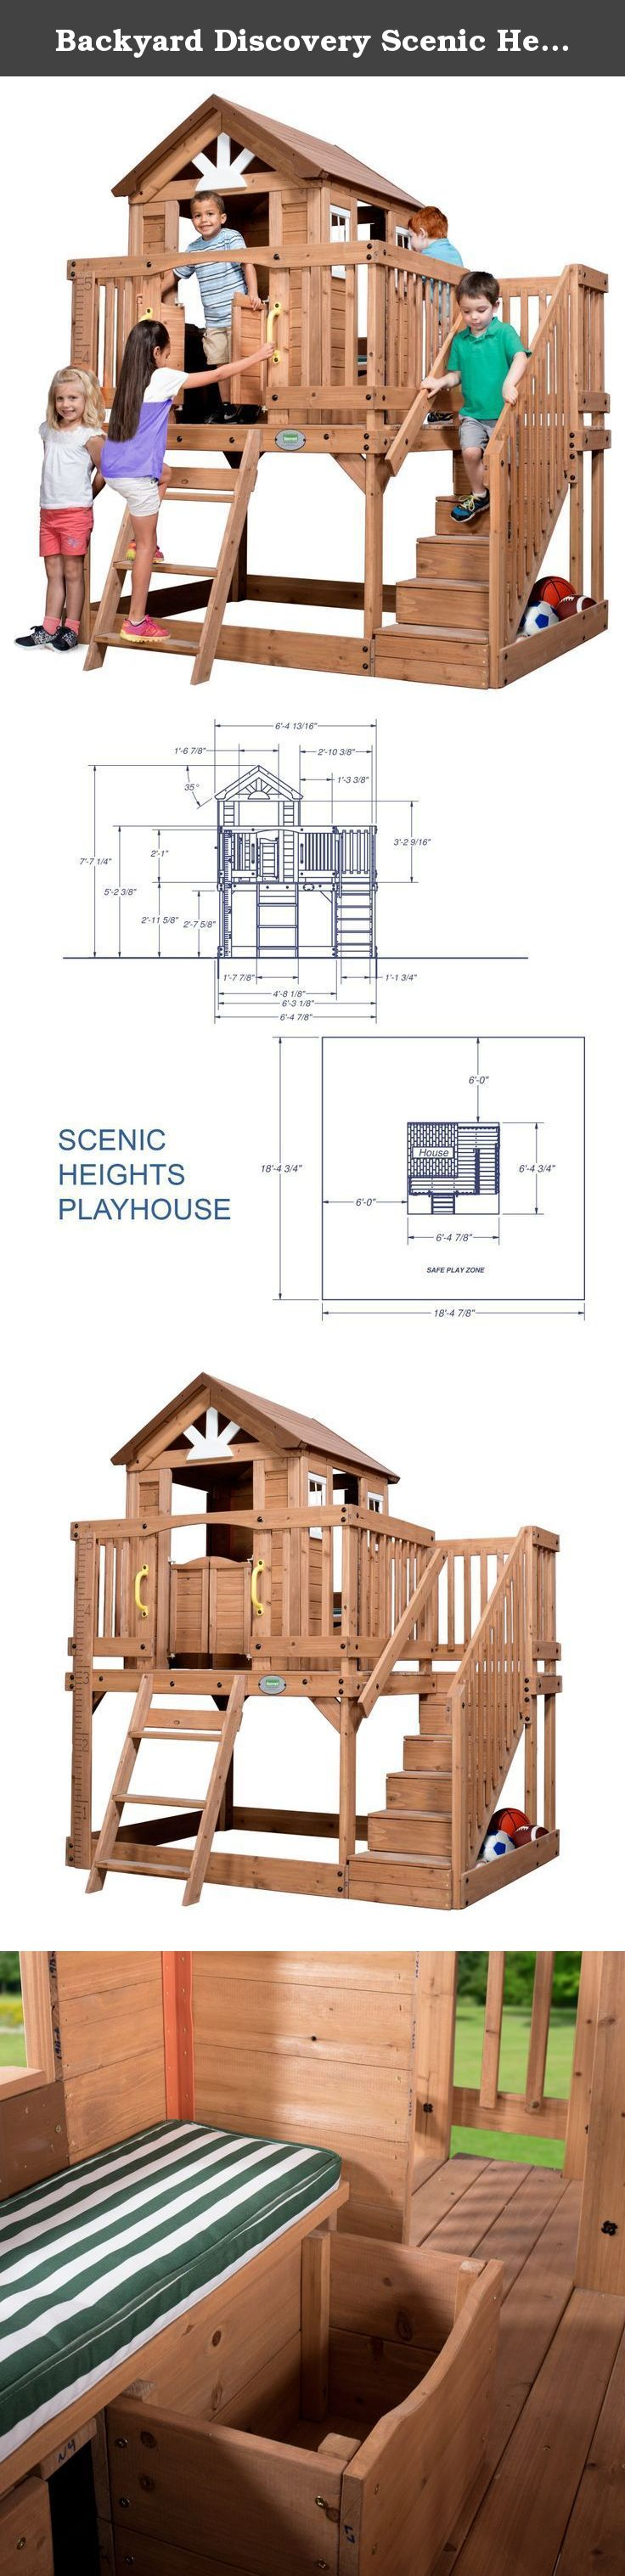 Backyard Discovery Scenic Heights All Cedar Playhouse. For ...